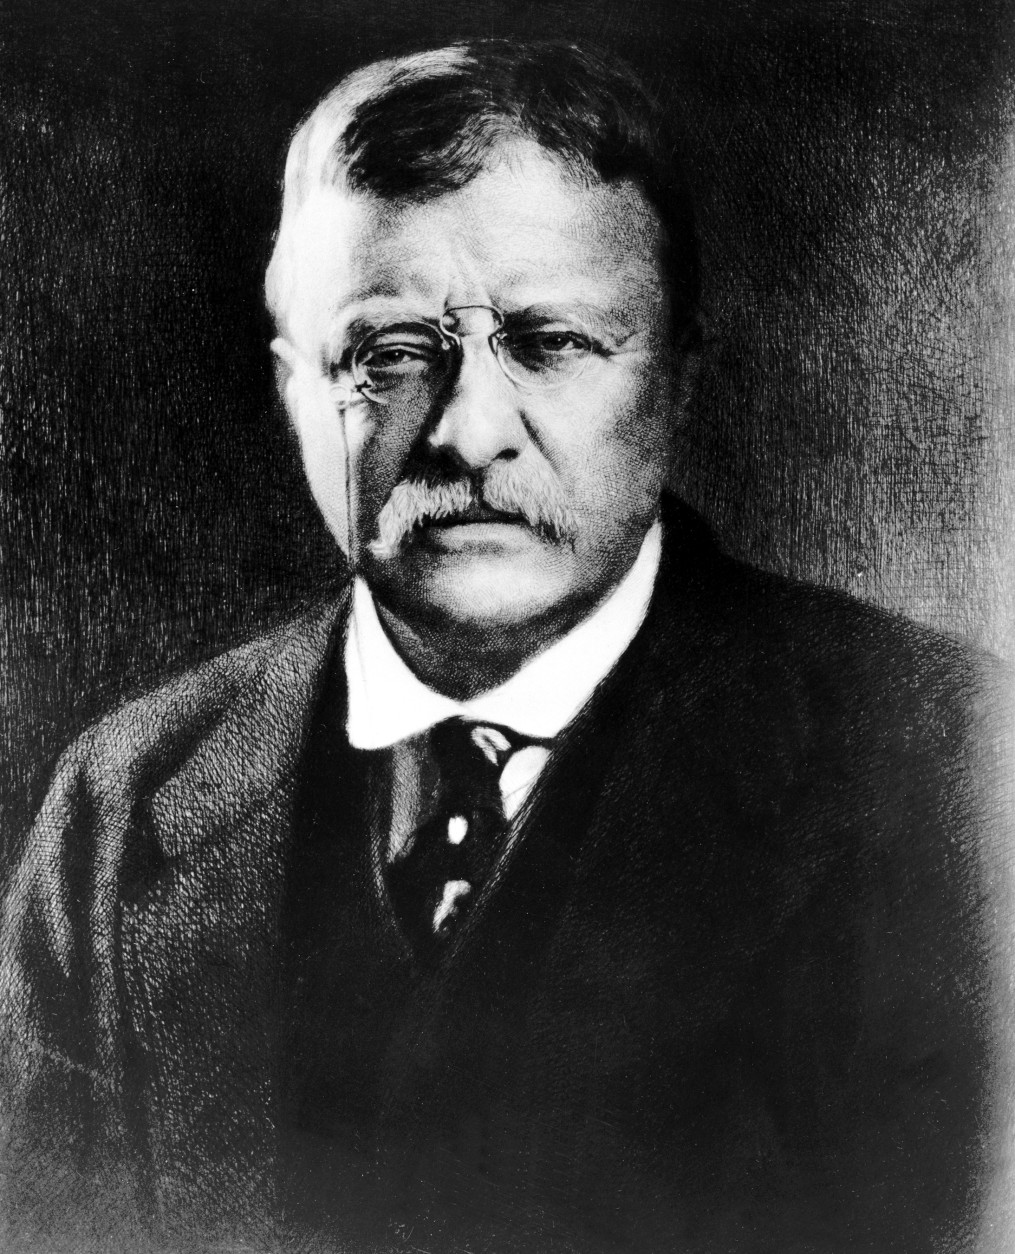 File - Theodore Roosevelt, the 26th president of the United States, is seen in this undated file photo. President Barack Obama won the 2009 Nobel Peace Prize Friday Oct. 9, 2009. The stunning choice made Obama the third sitting U.S. president to win the Nobel Peace Prize. Theodore Roosevelt won the award in 1906 and Woodrow Wilson won in 1919.   (AP Photo, File)